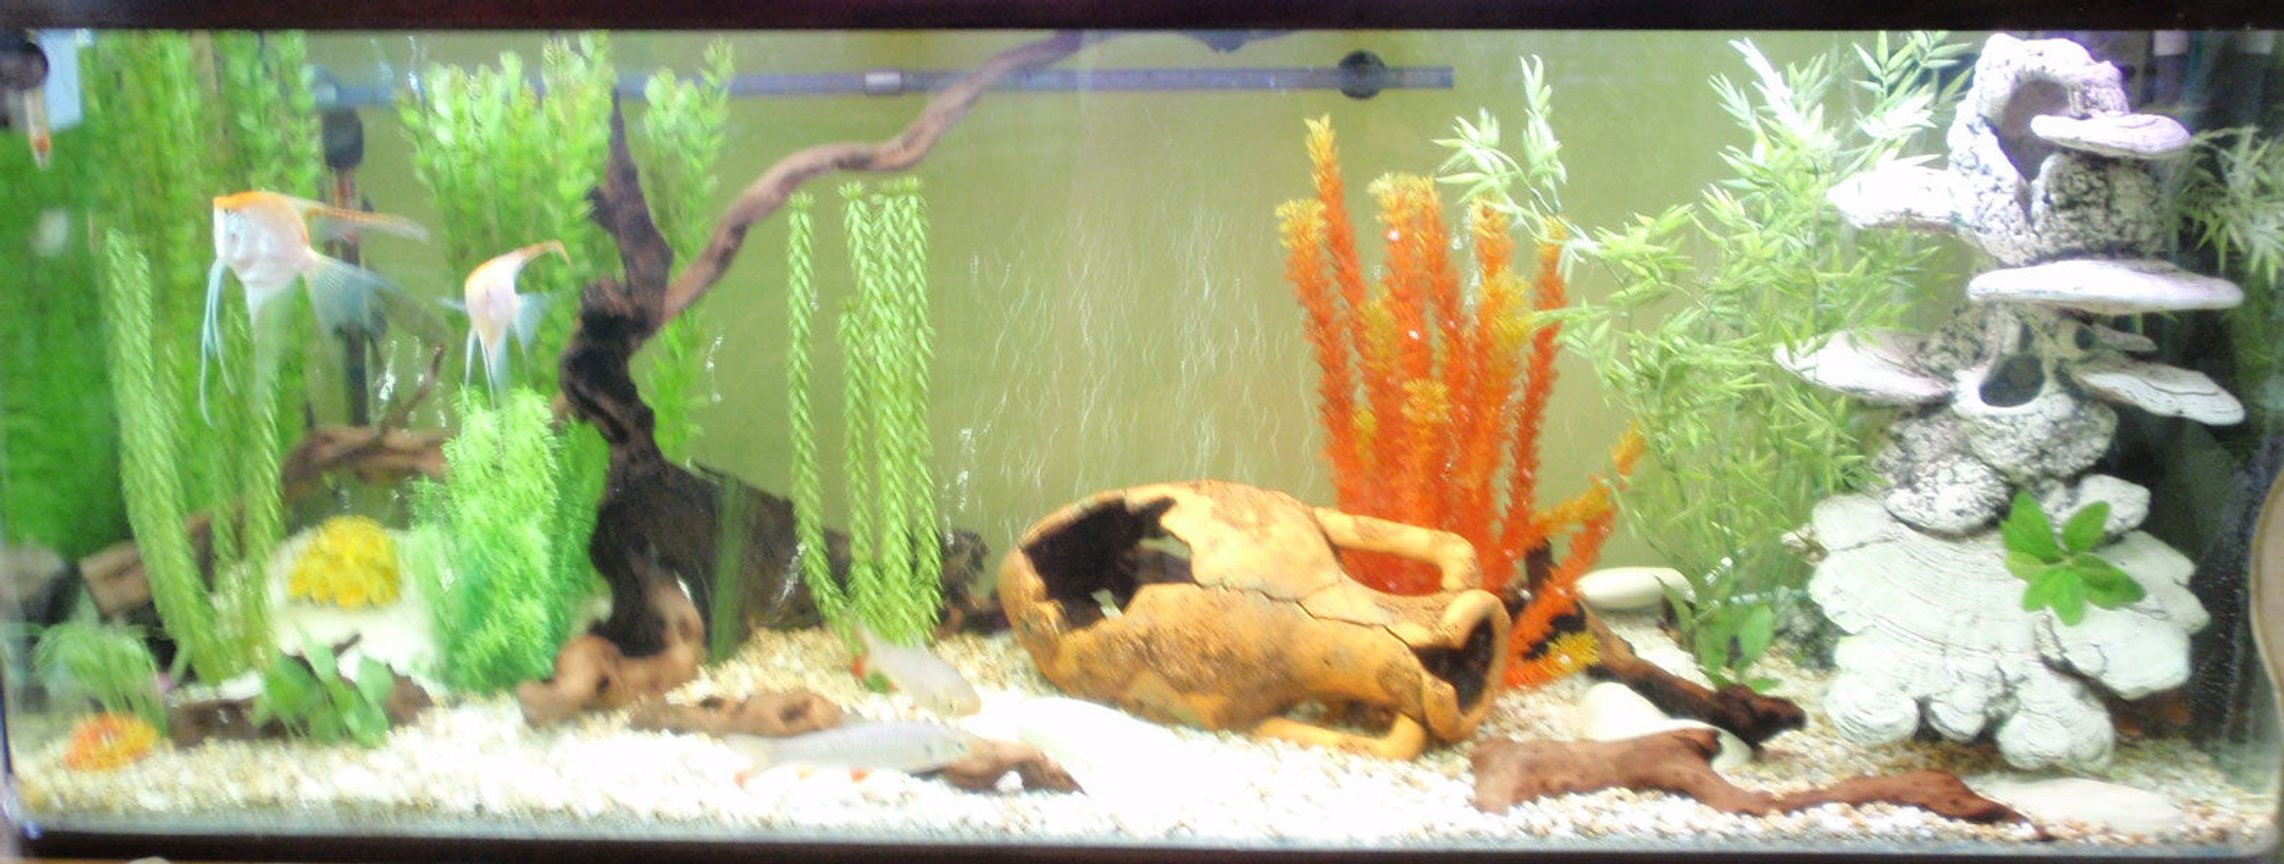 120 gallons freshwater fish tank (mostly fish and non-living decorations) - three days after redesign and most of decorations still in place - strange :)